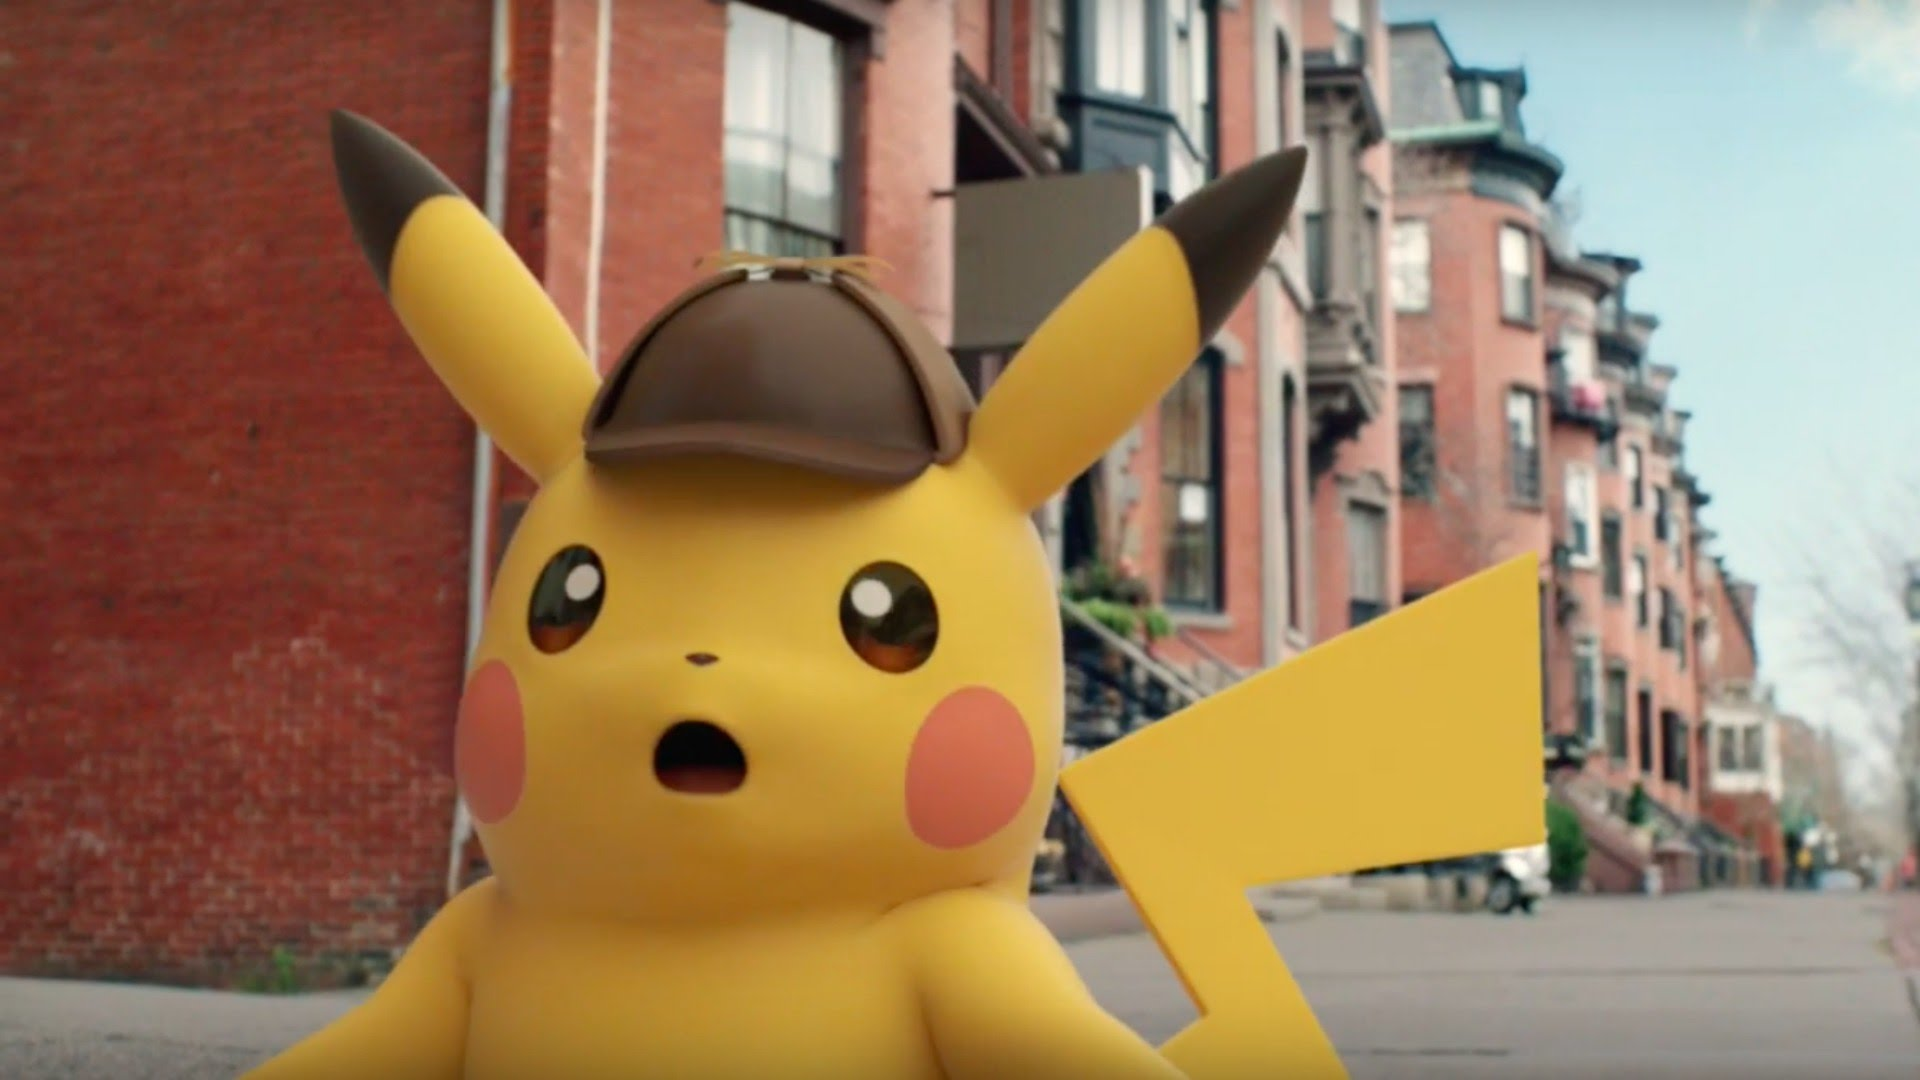 Ryan Reynolds to Voice 'Detective Pikachu' in Live-Action 'Pokemon' Movie